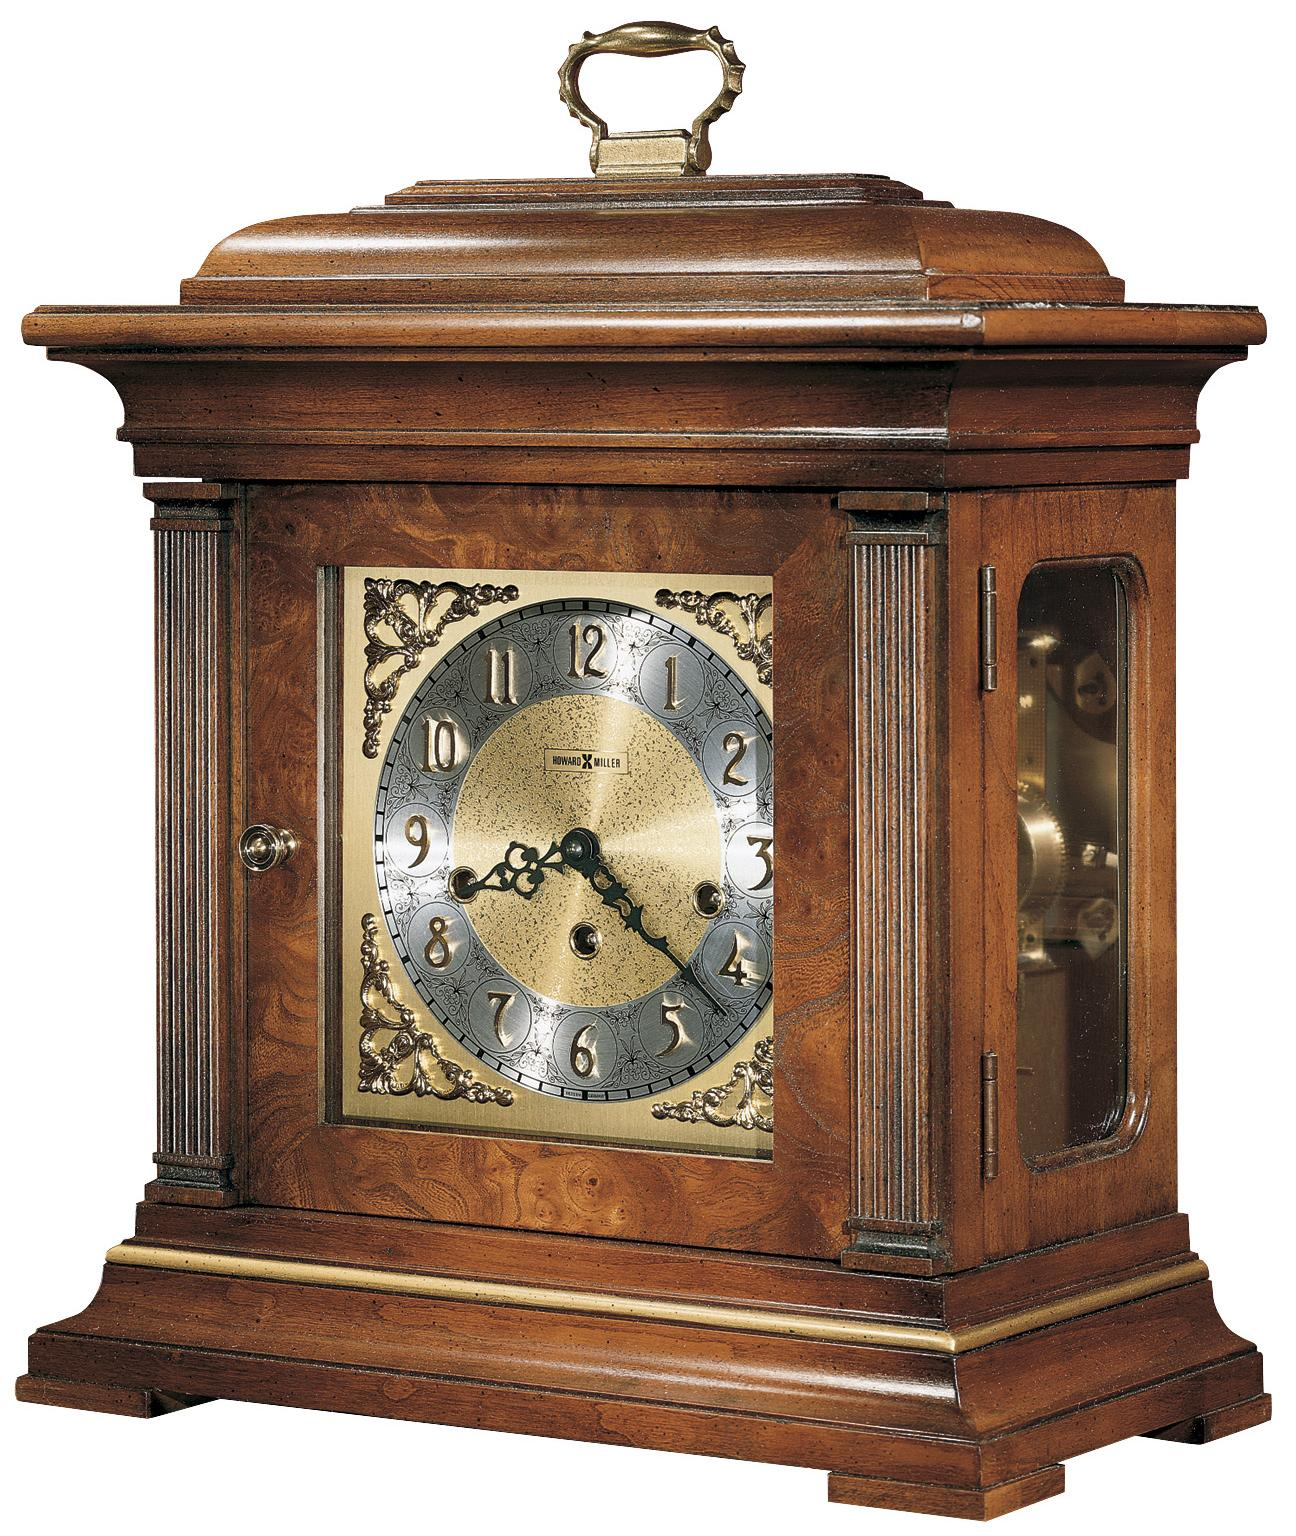 612 Thomas Tompion by Howard Miller at Prime Brothers Furniture